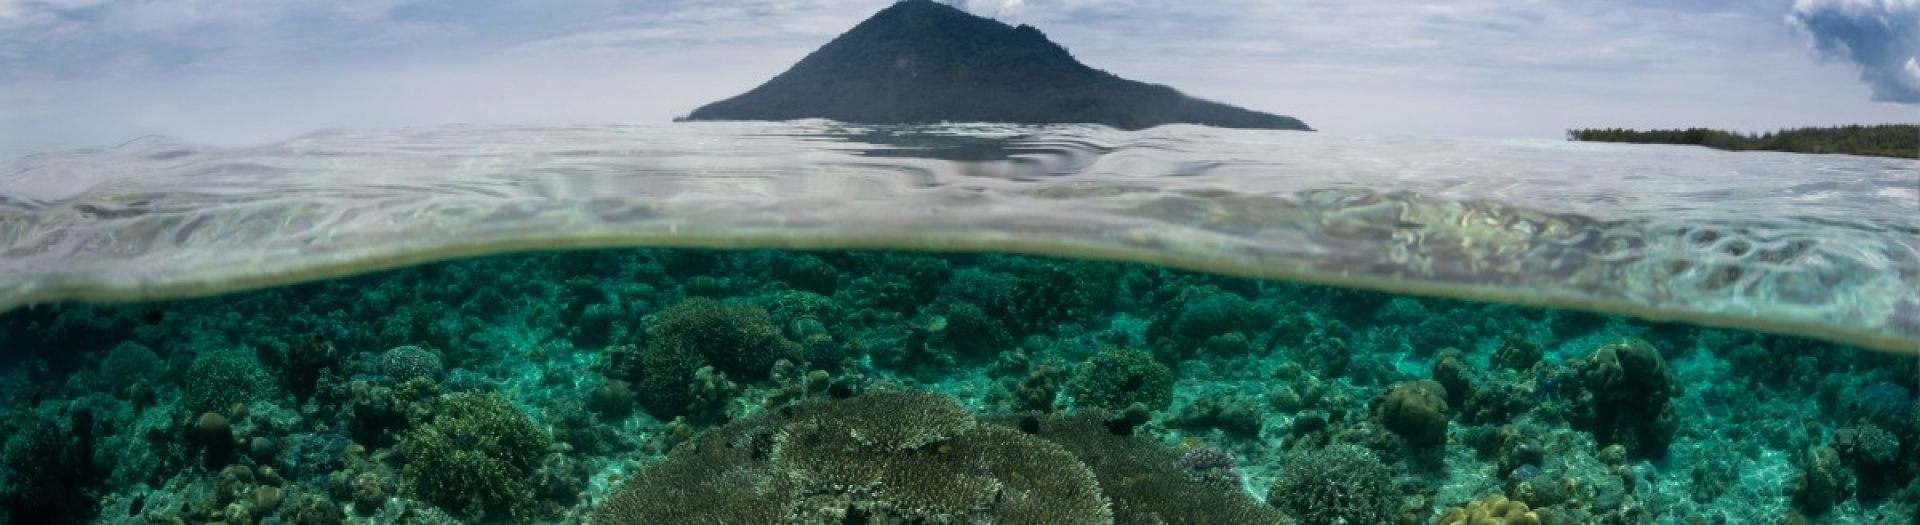 North Sulawesi : Fauna, volcanoes and coral reefs